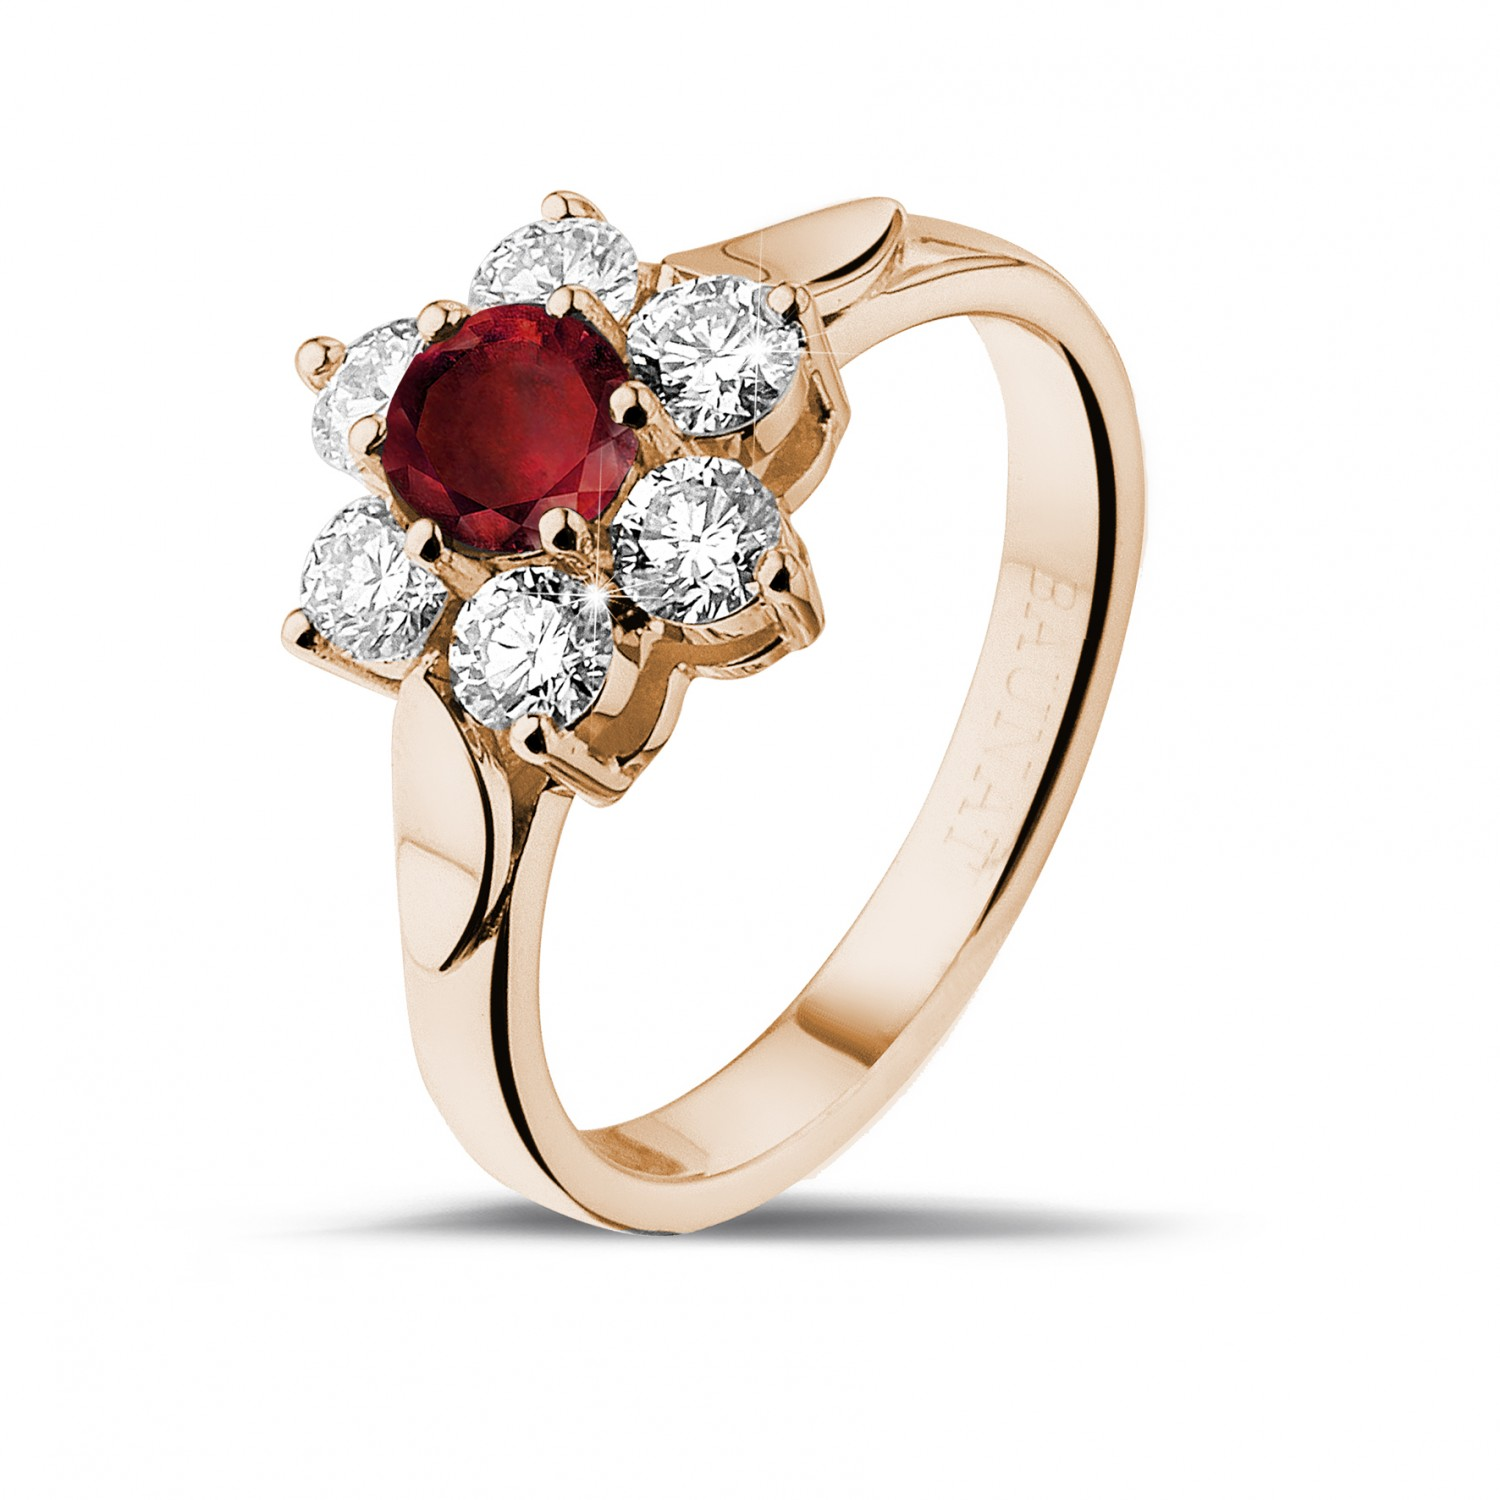 Flower ring in red gold with a round ruby and side